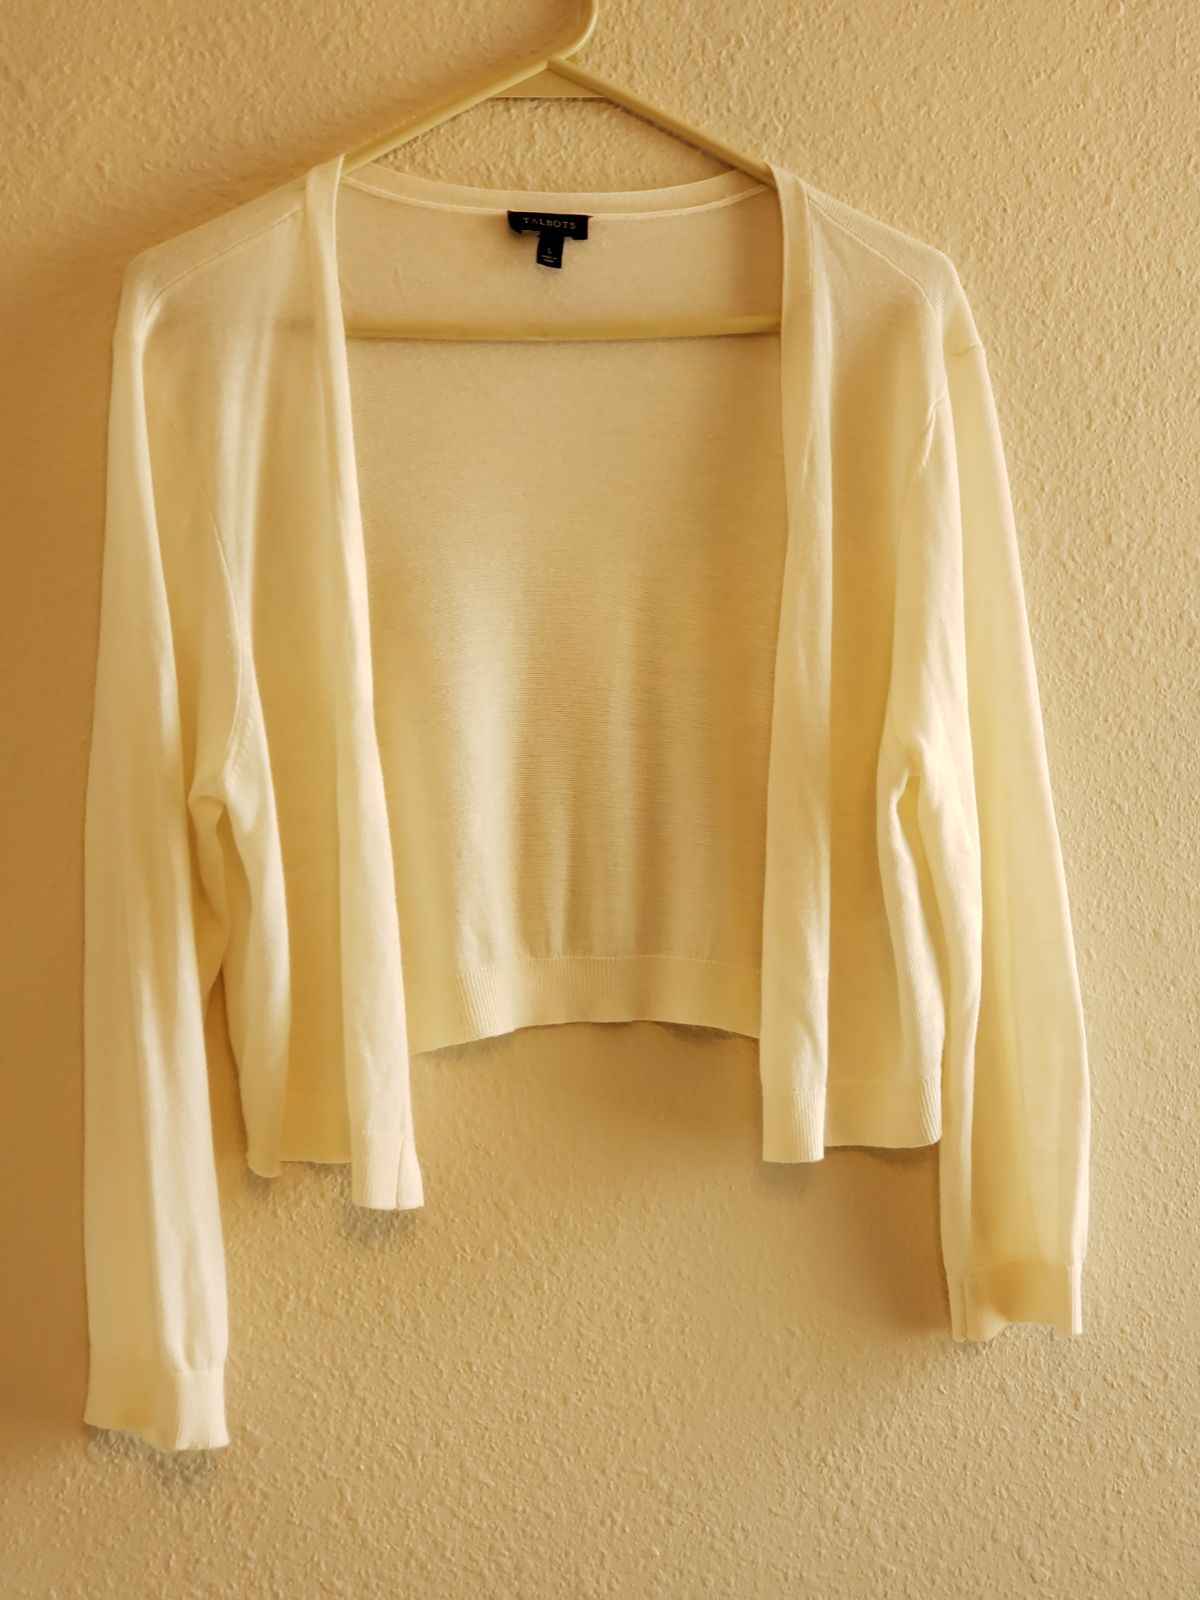 Talbots White Shrug. Women's Large